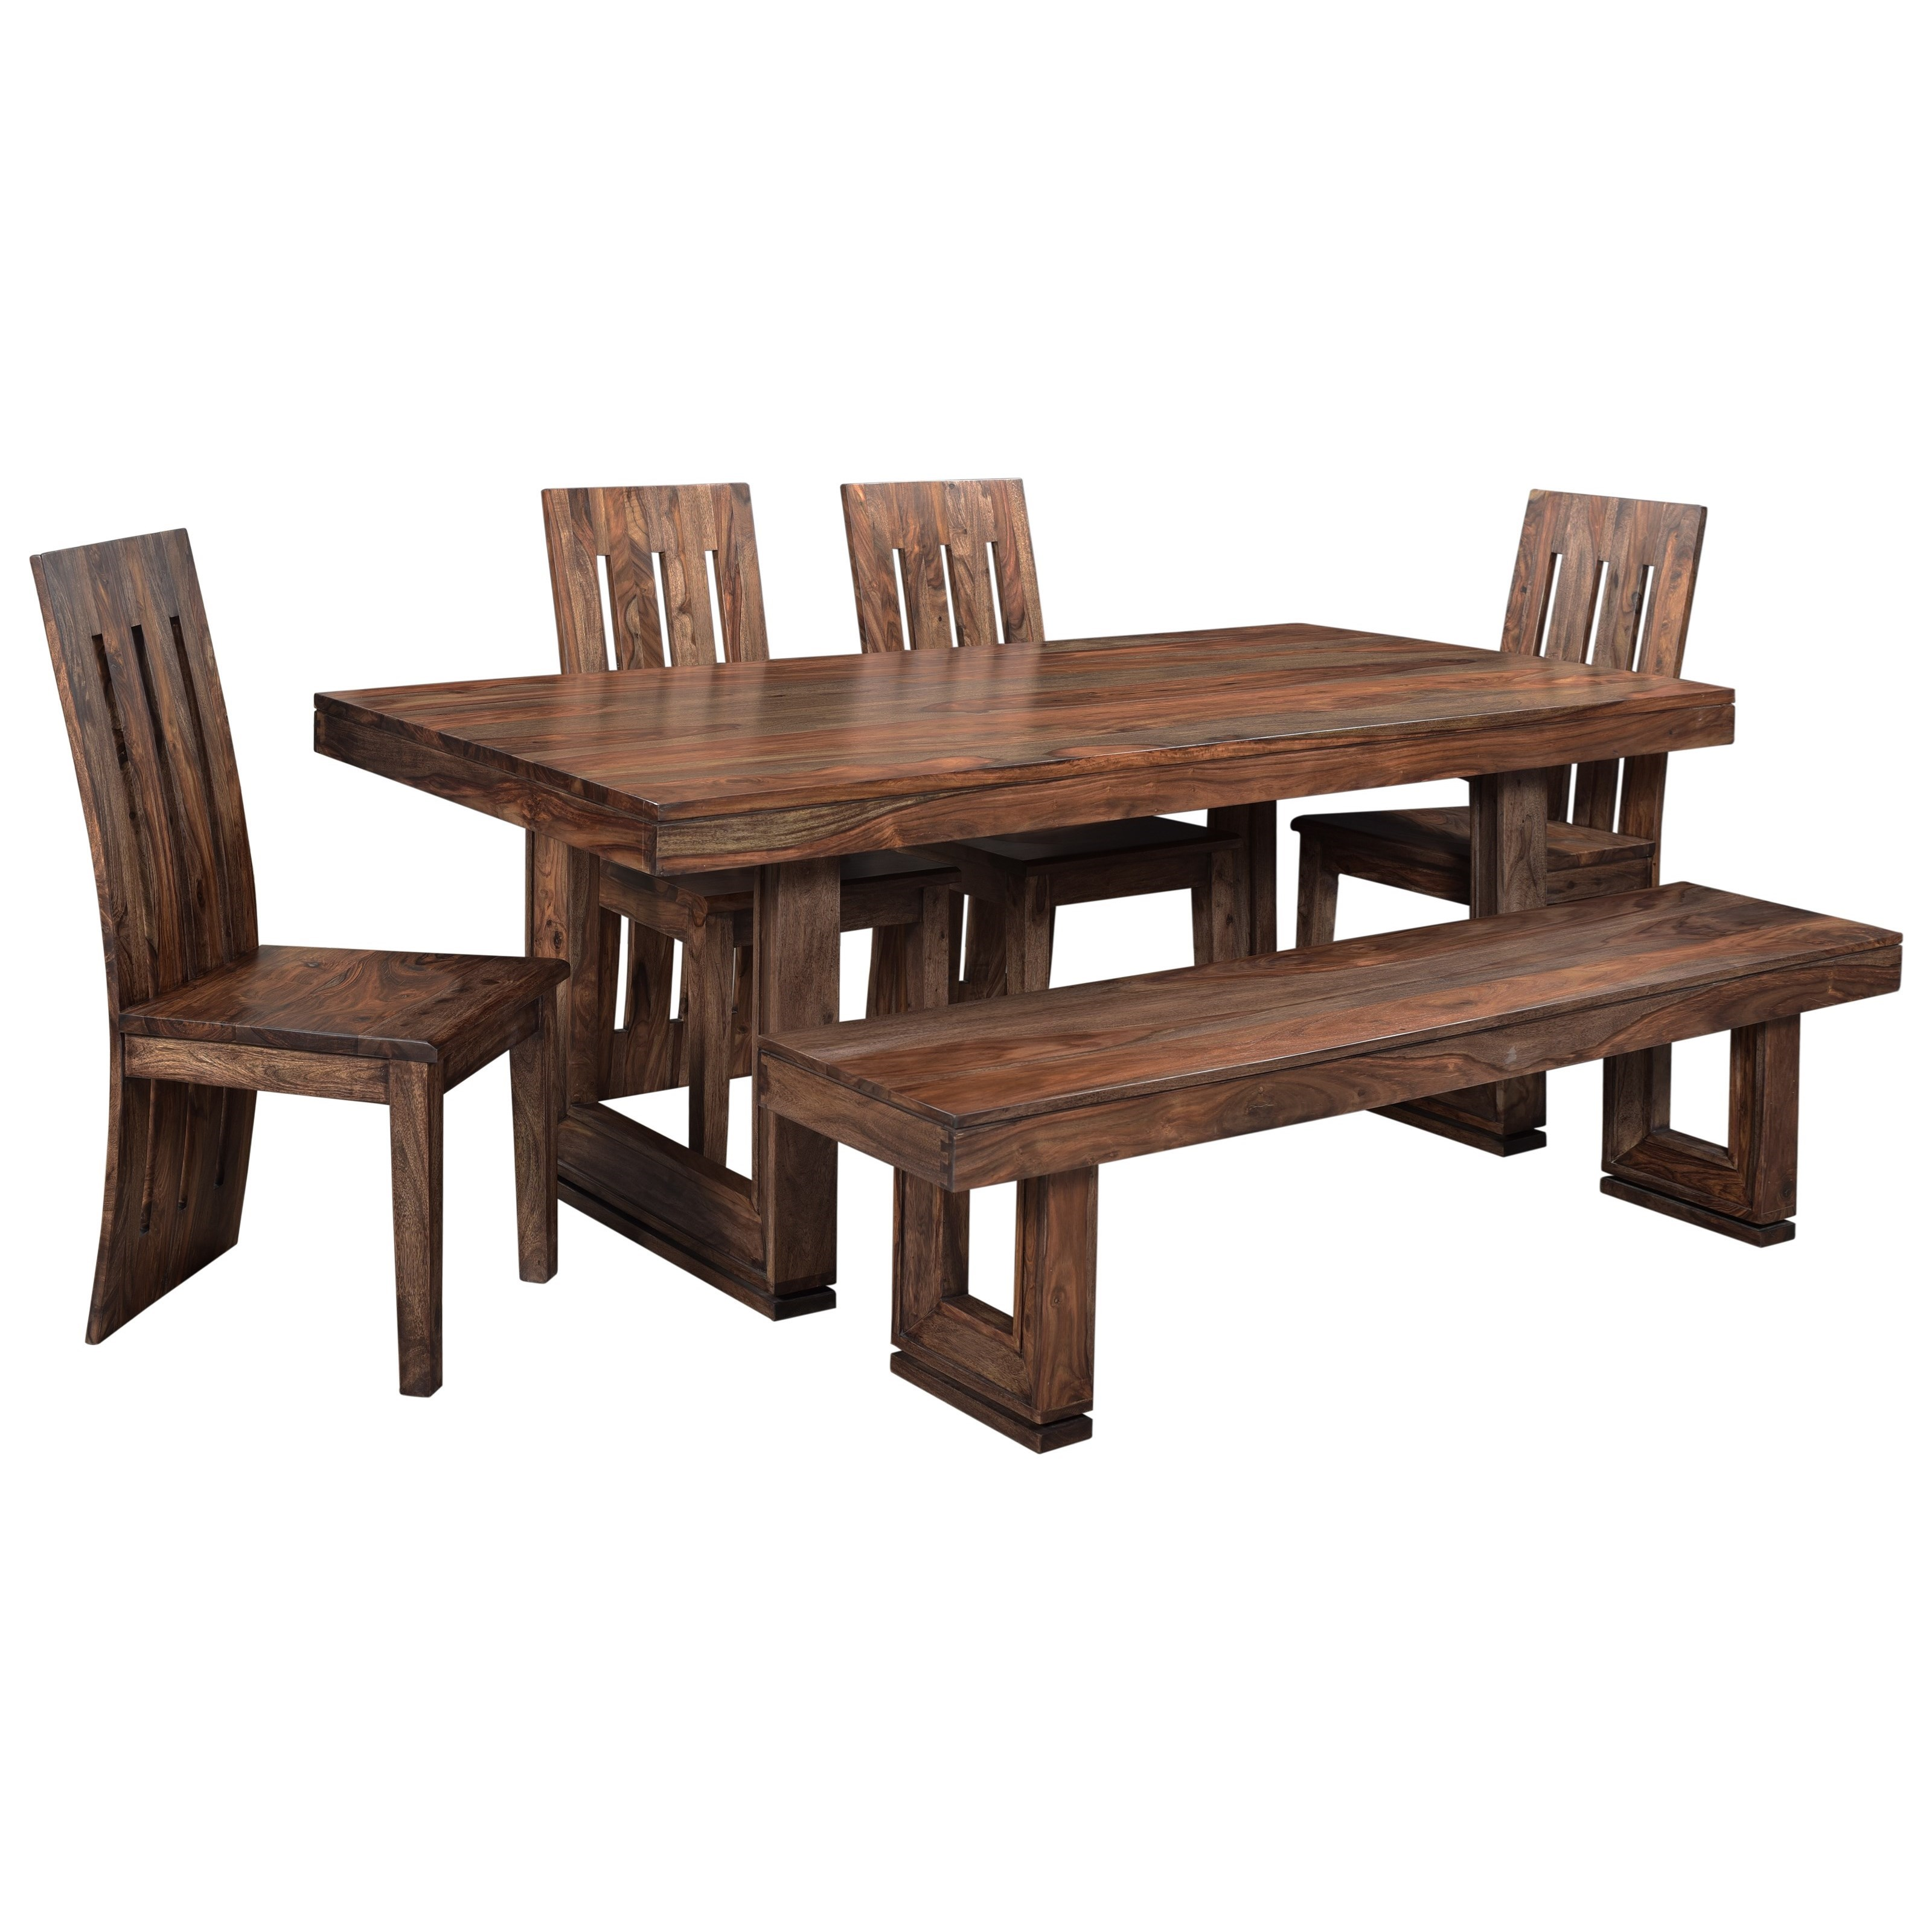 Gilliam Table and Chair Set with Bench by C2C at Walker's Furniture